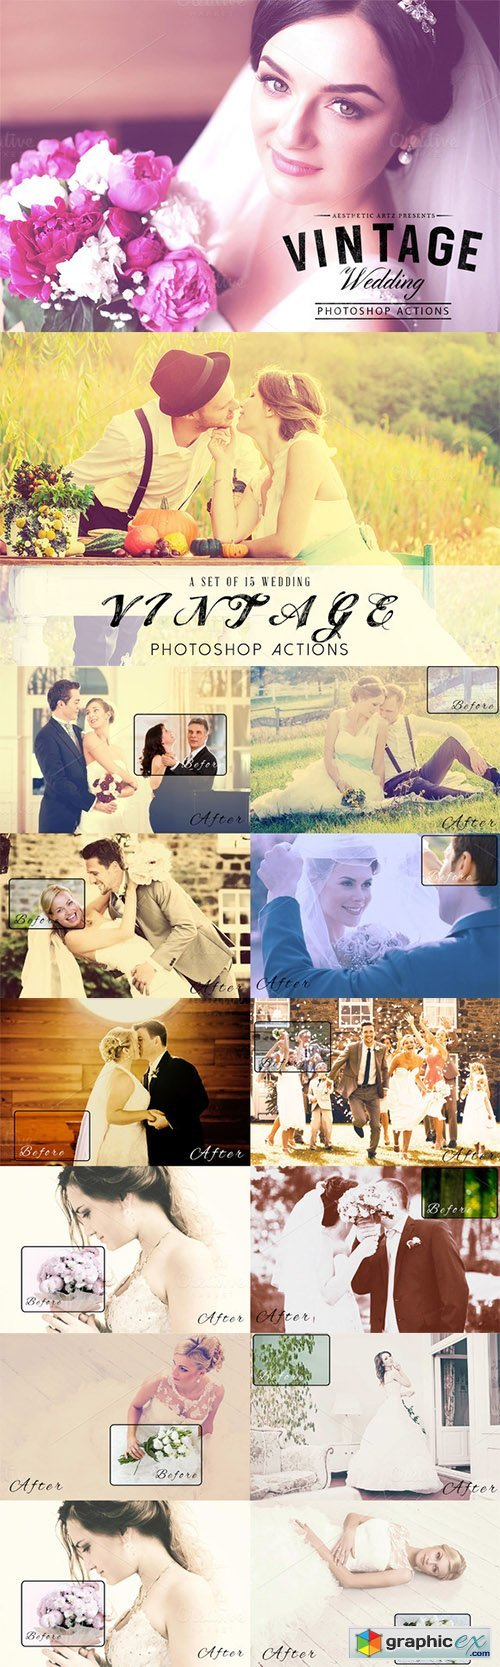 Aesthetic Vintage Wedding PS Actions